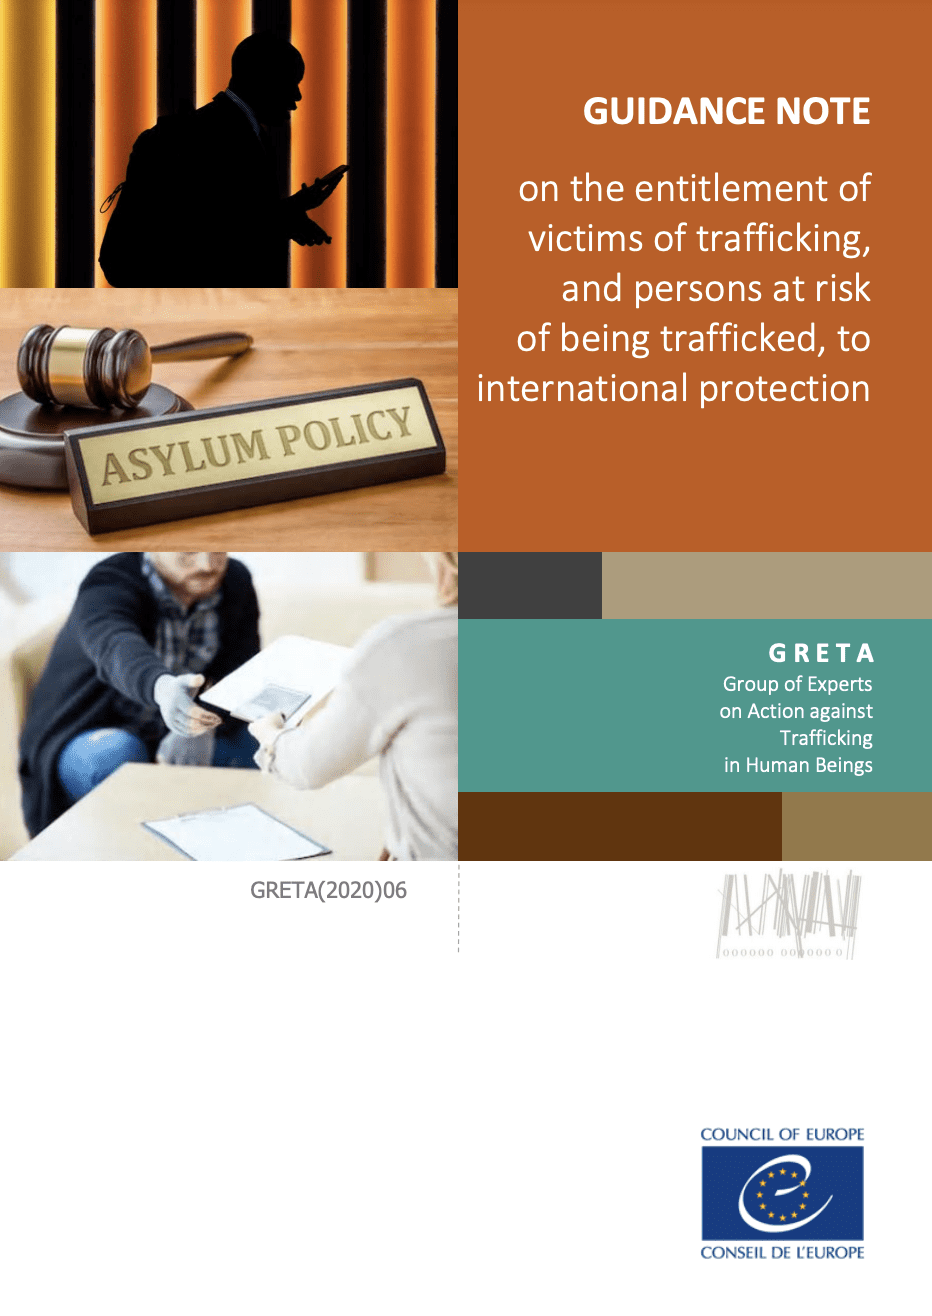 Guidance note on the entitlement of victims of trafficking, and persons at risk of being trafficked, to international protection